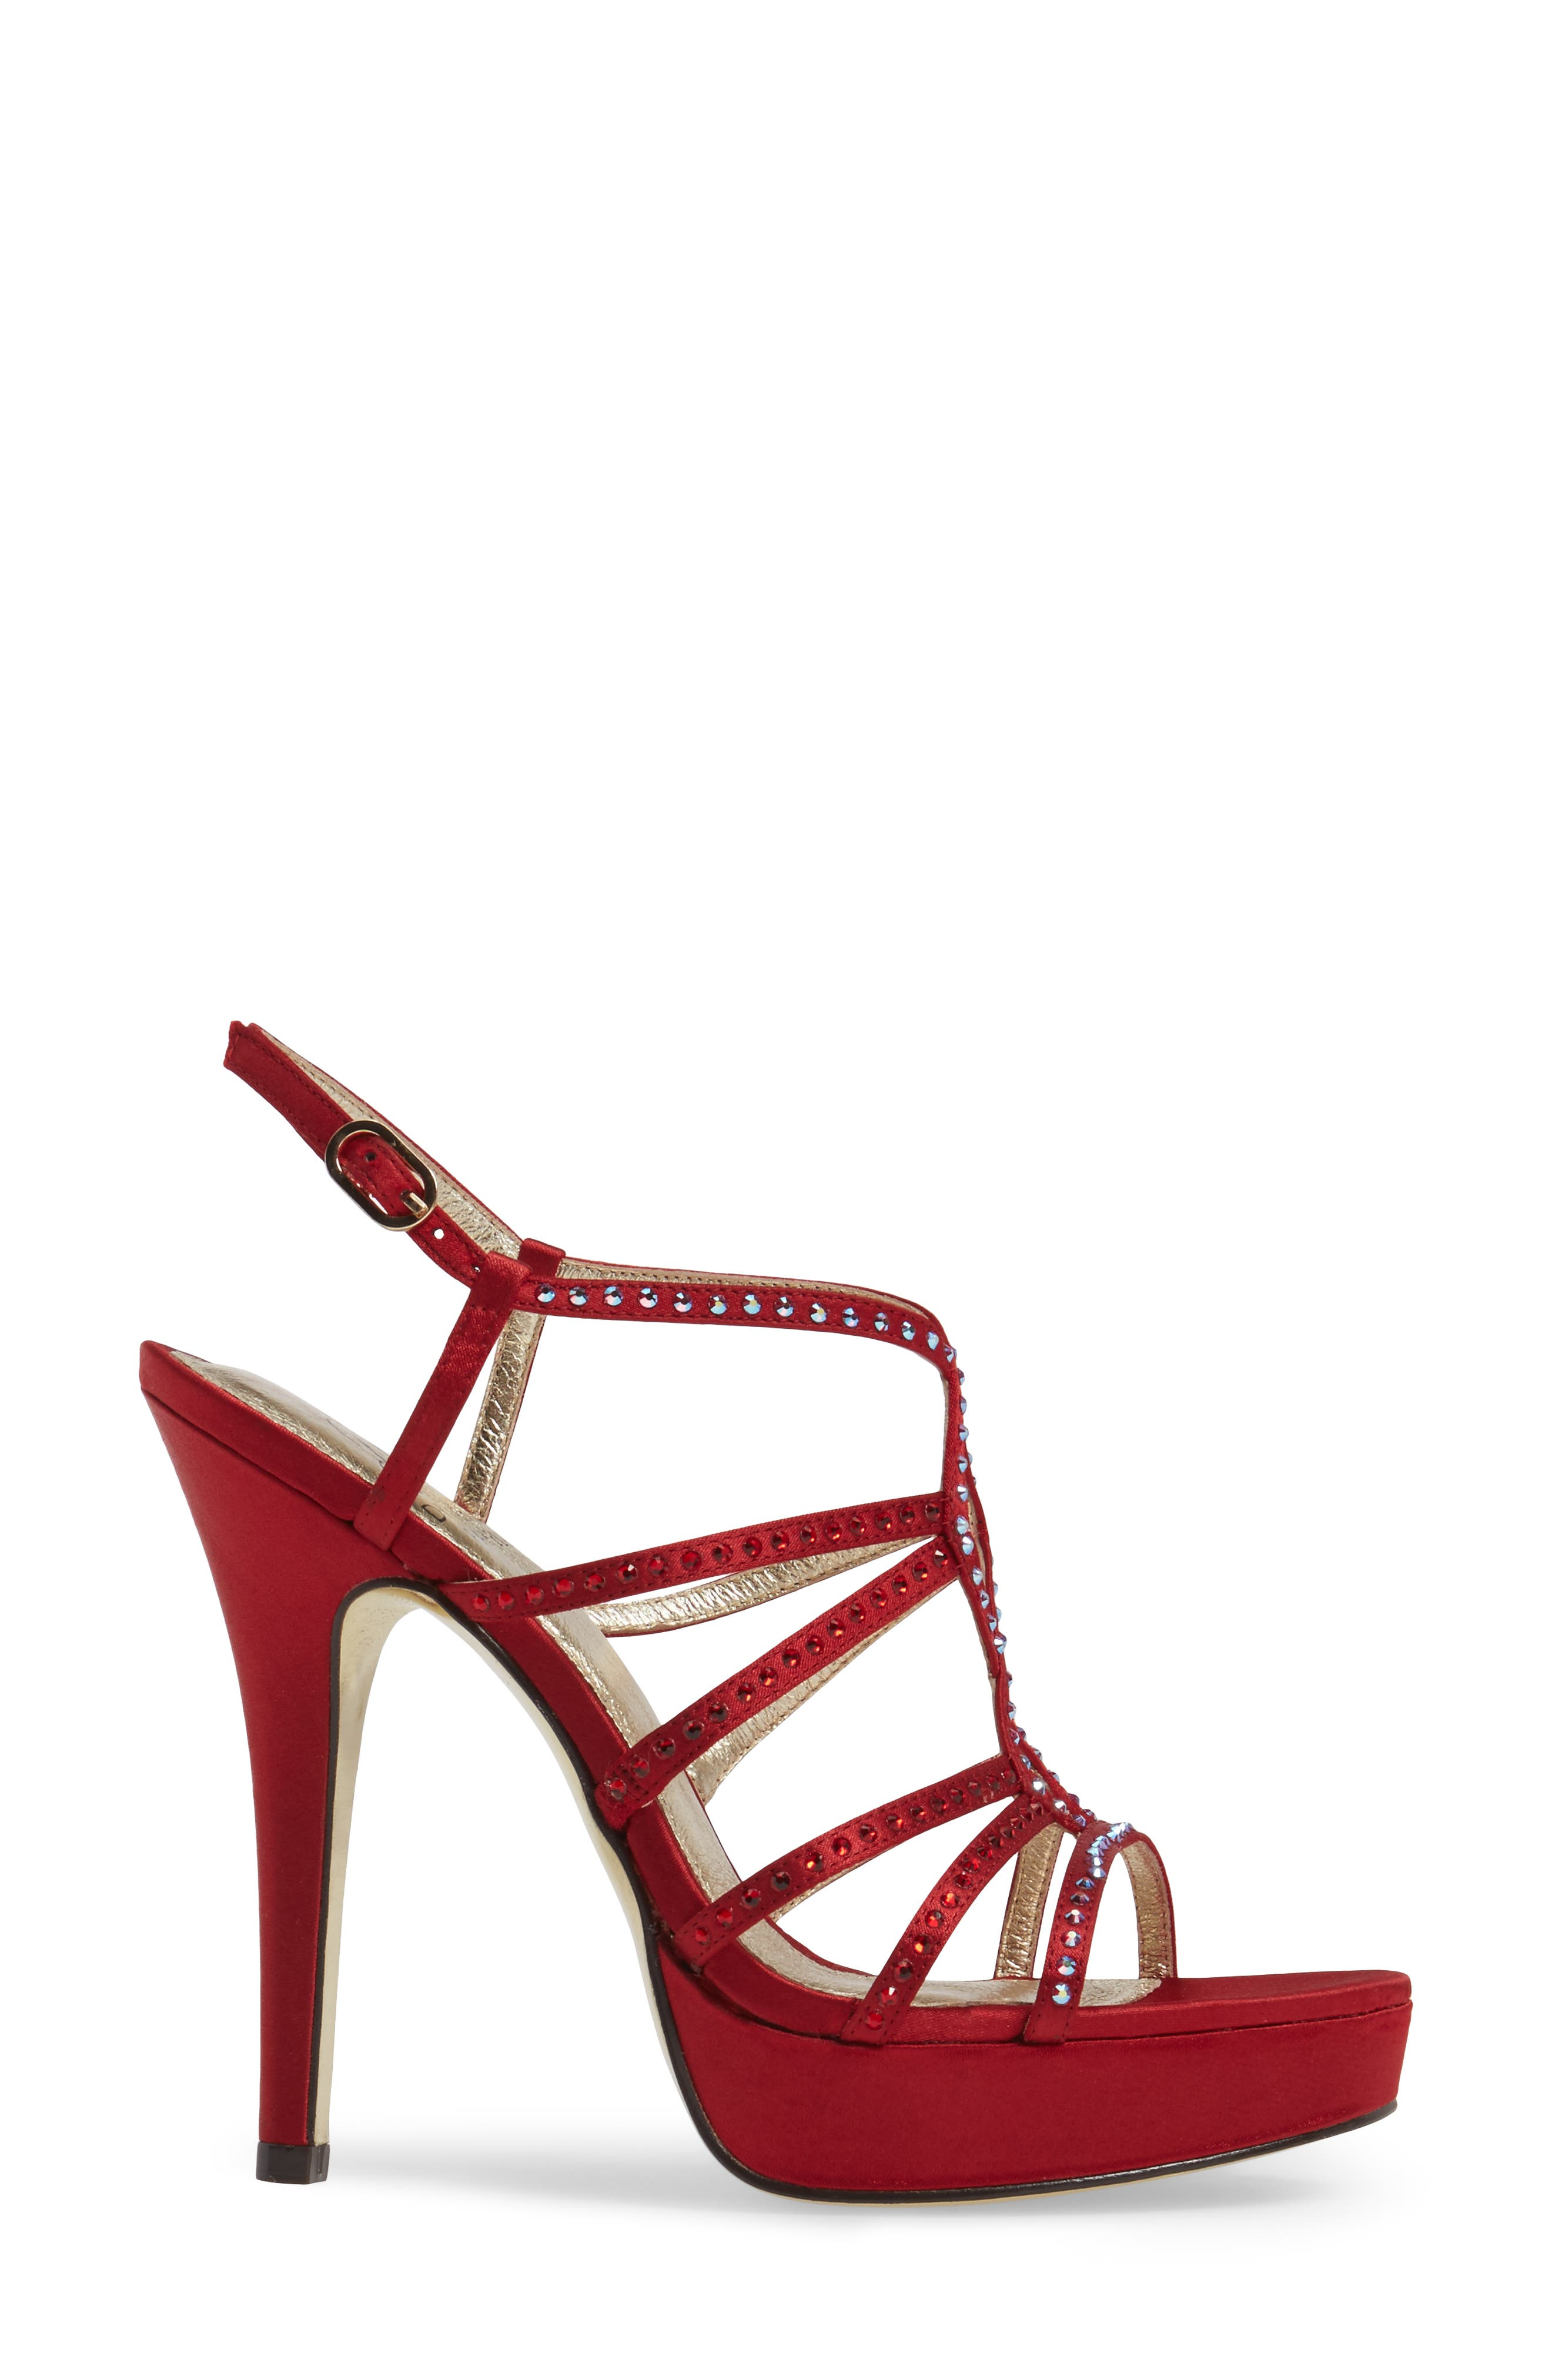 Miranda Embellished Platform Sandal,                             Alternate thumbnail 3, color,                             Red Classic Satin